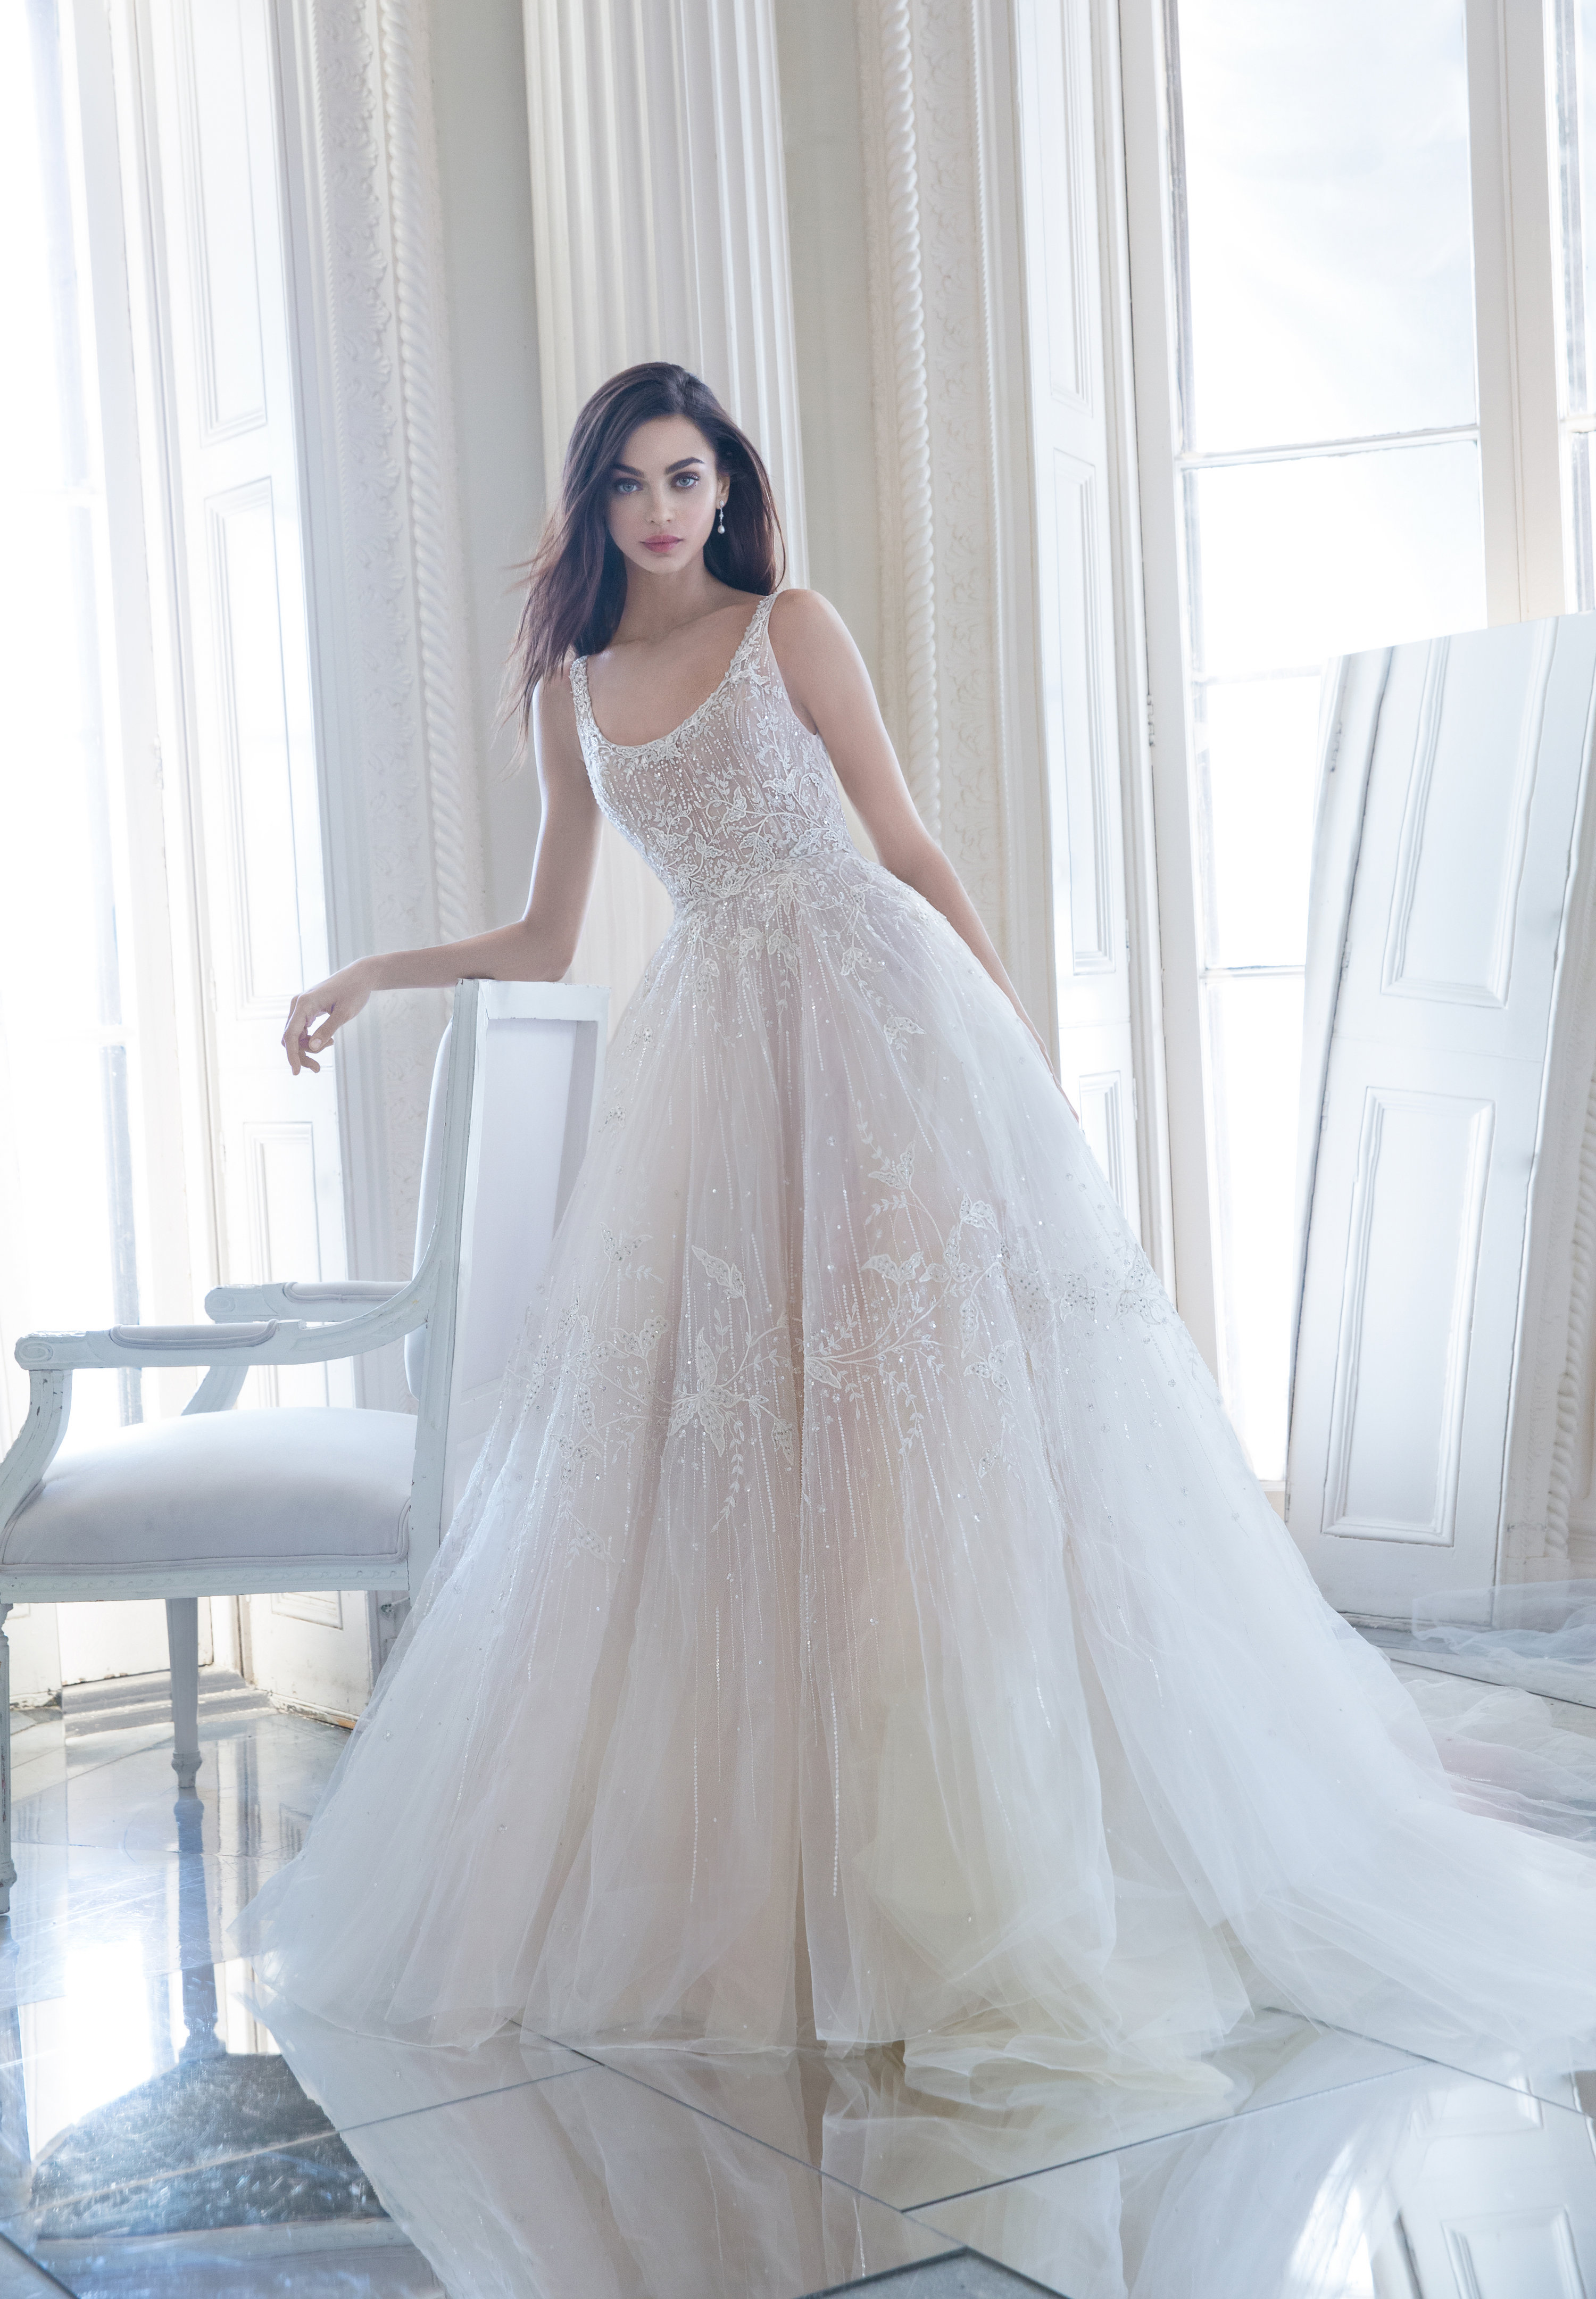 Bridal Gowns and Wedding Dresses by JLM Couture - Style 3804